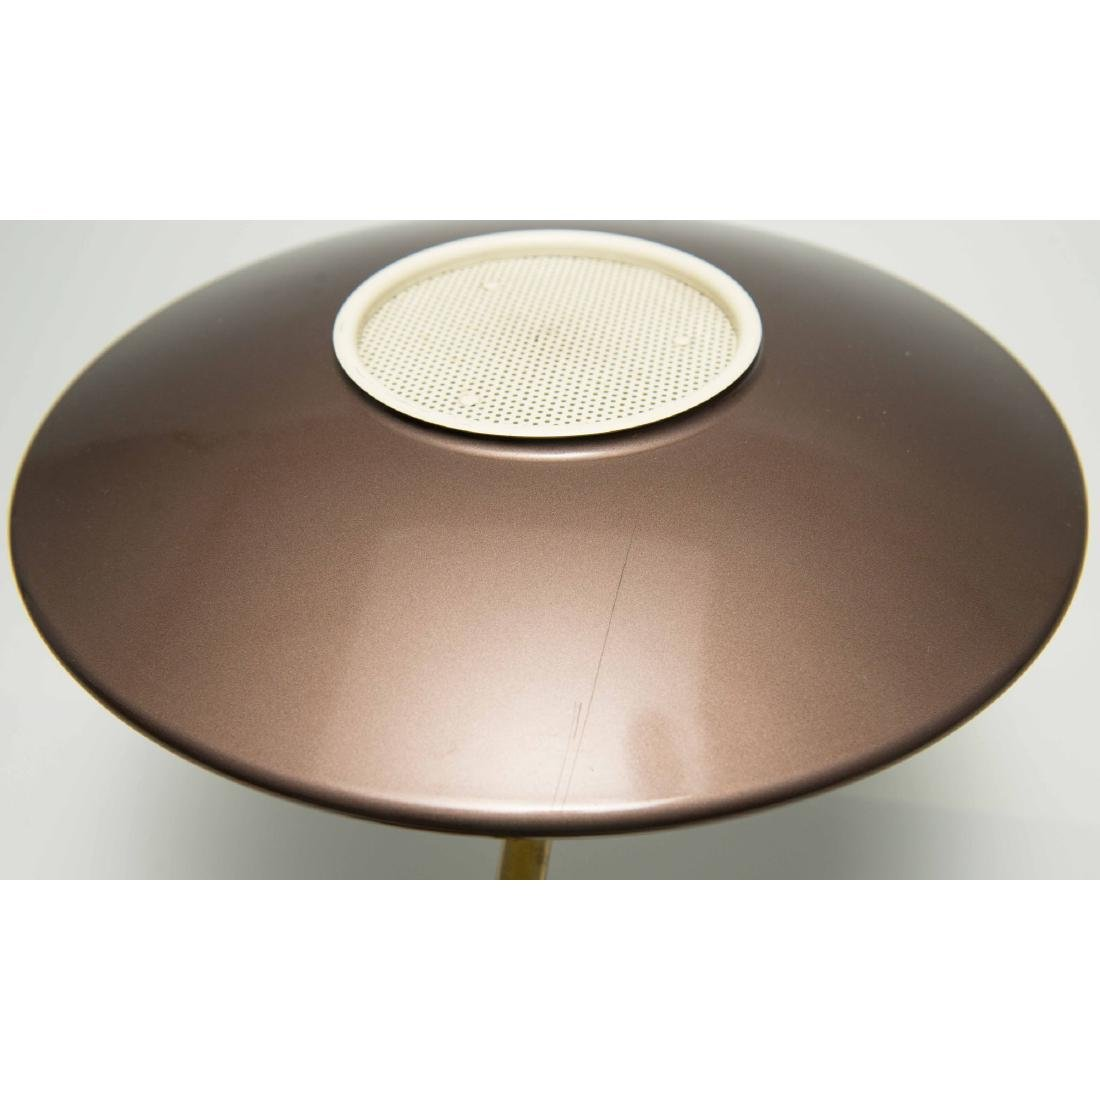 PAIR DAZOR MID-CENTURY MODERN FLYING SAUCER LAMPS - 4